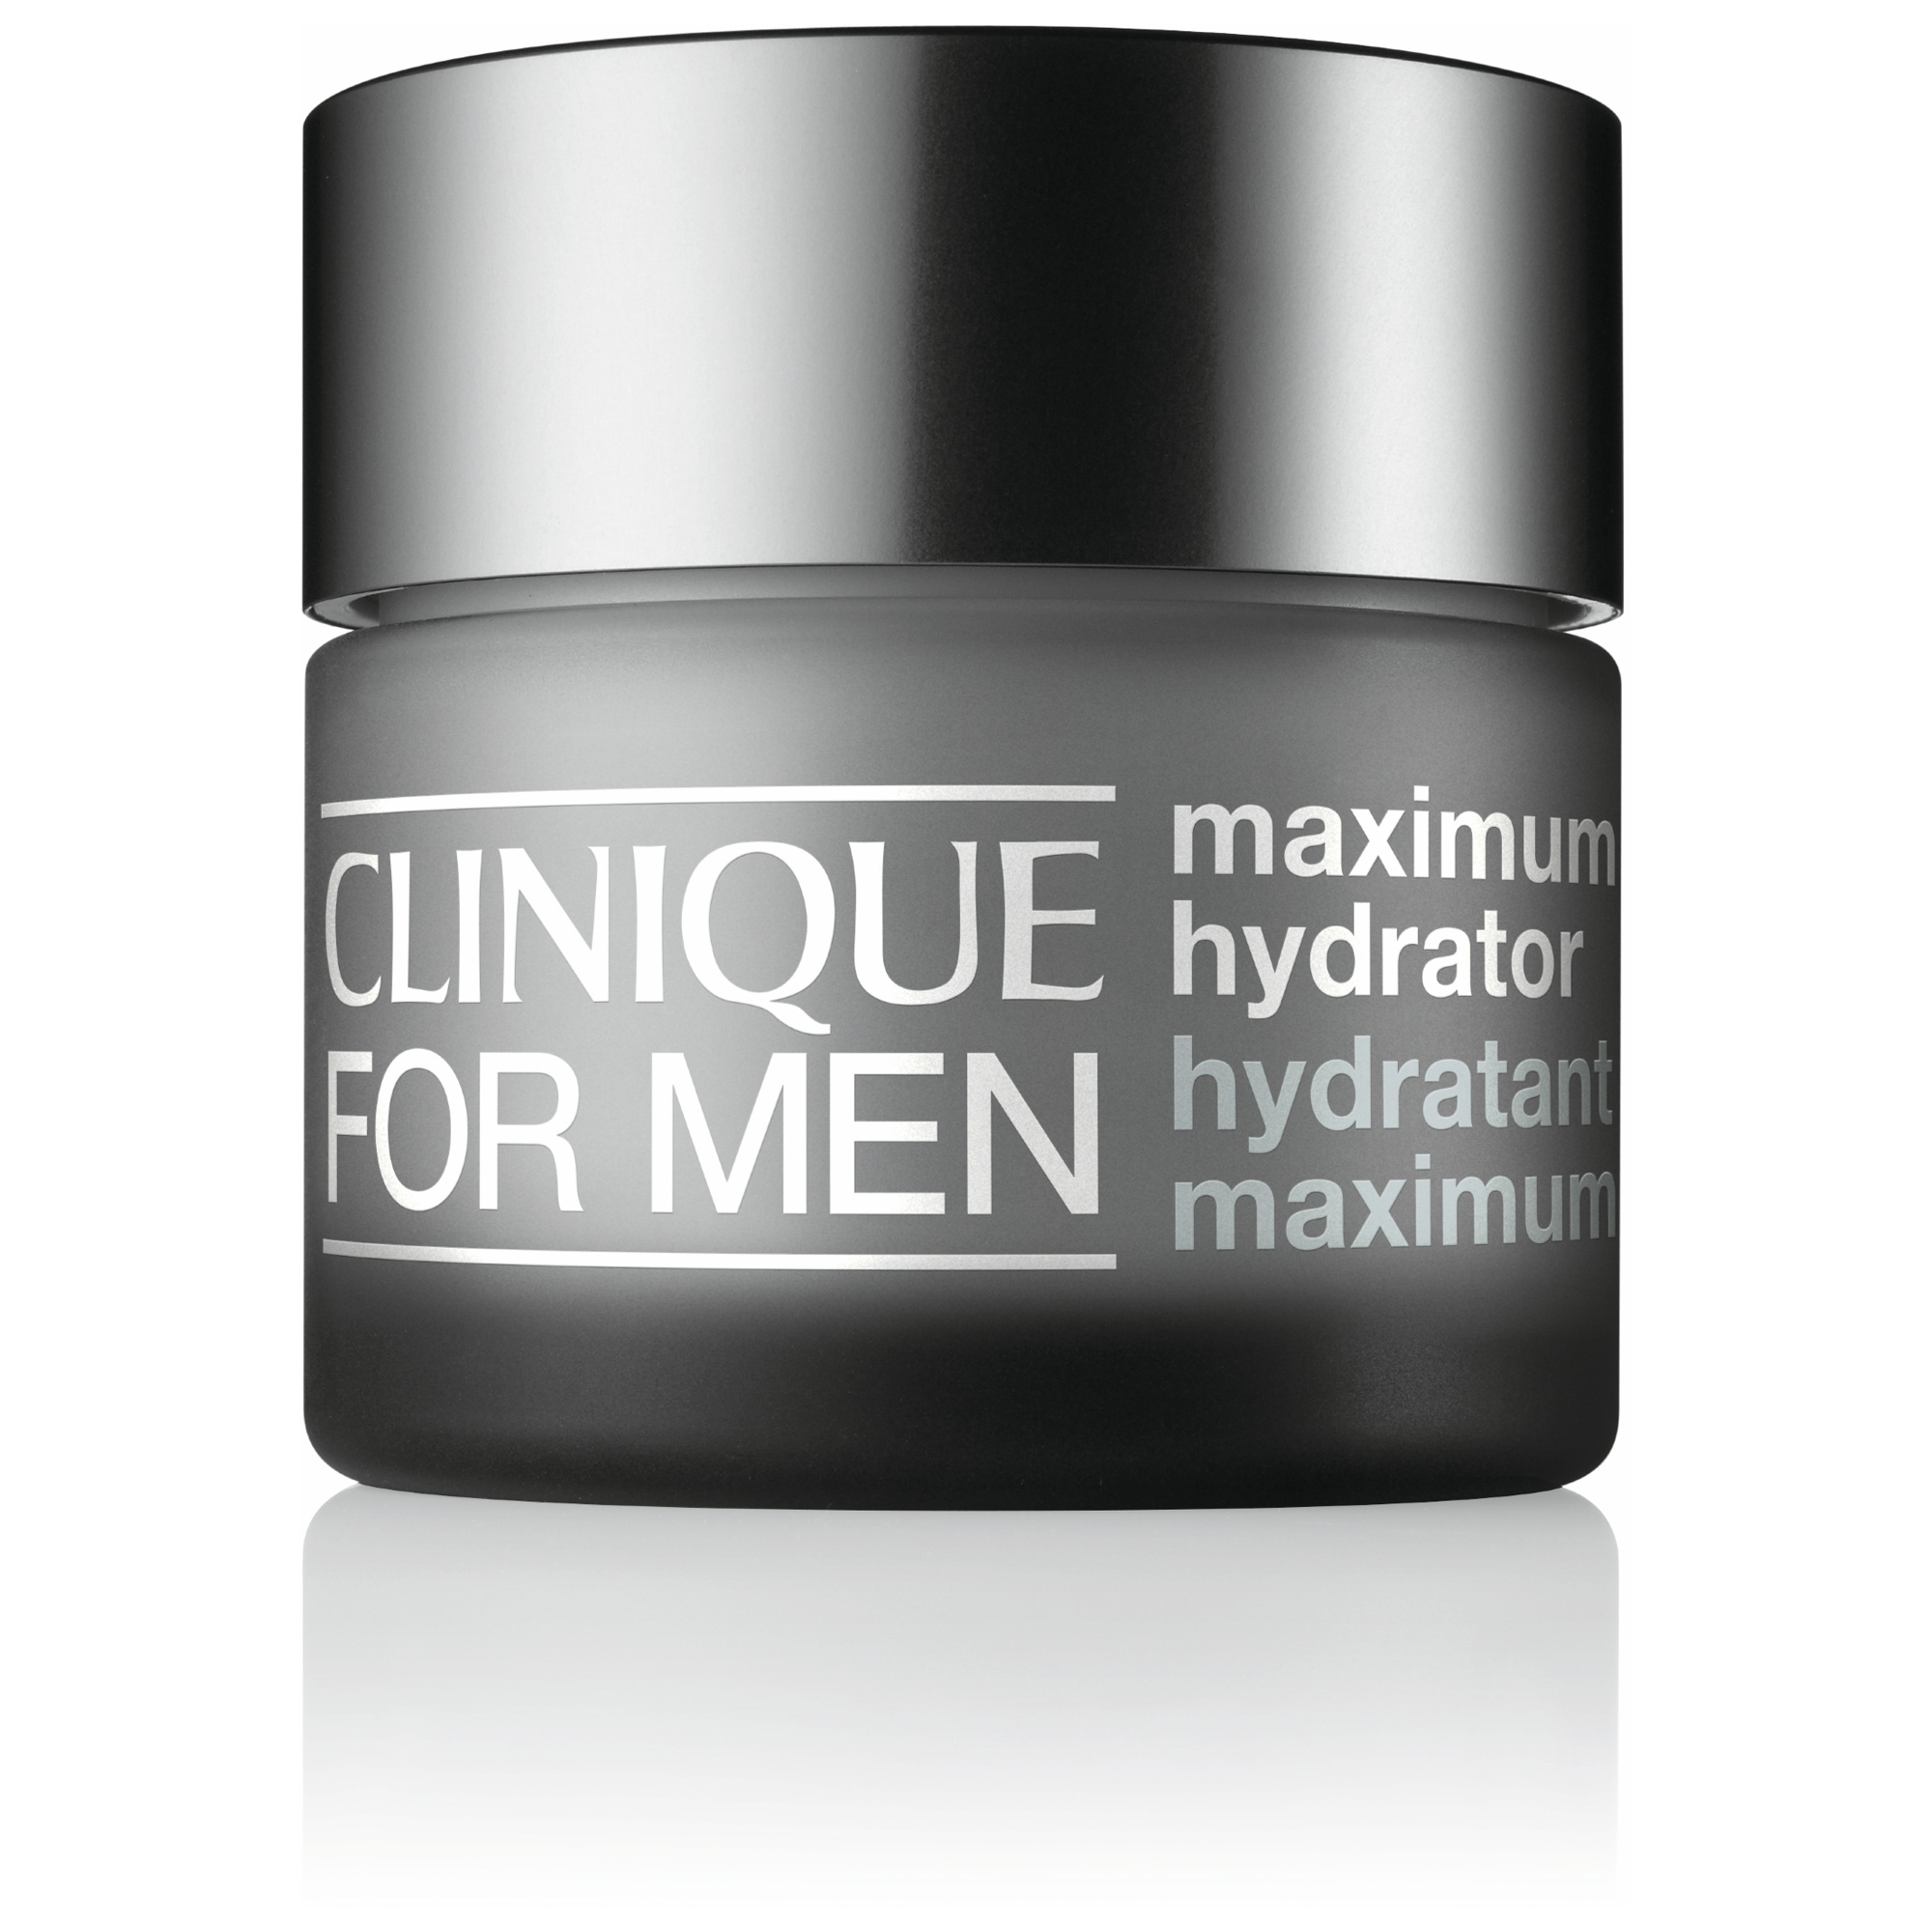 CLI FOR MEN MAXIMUM HYDRATOR